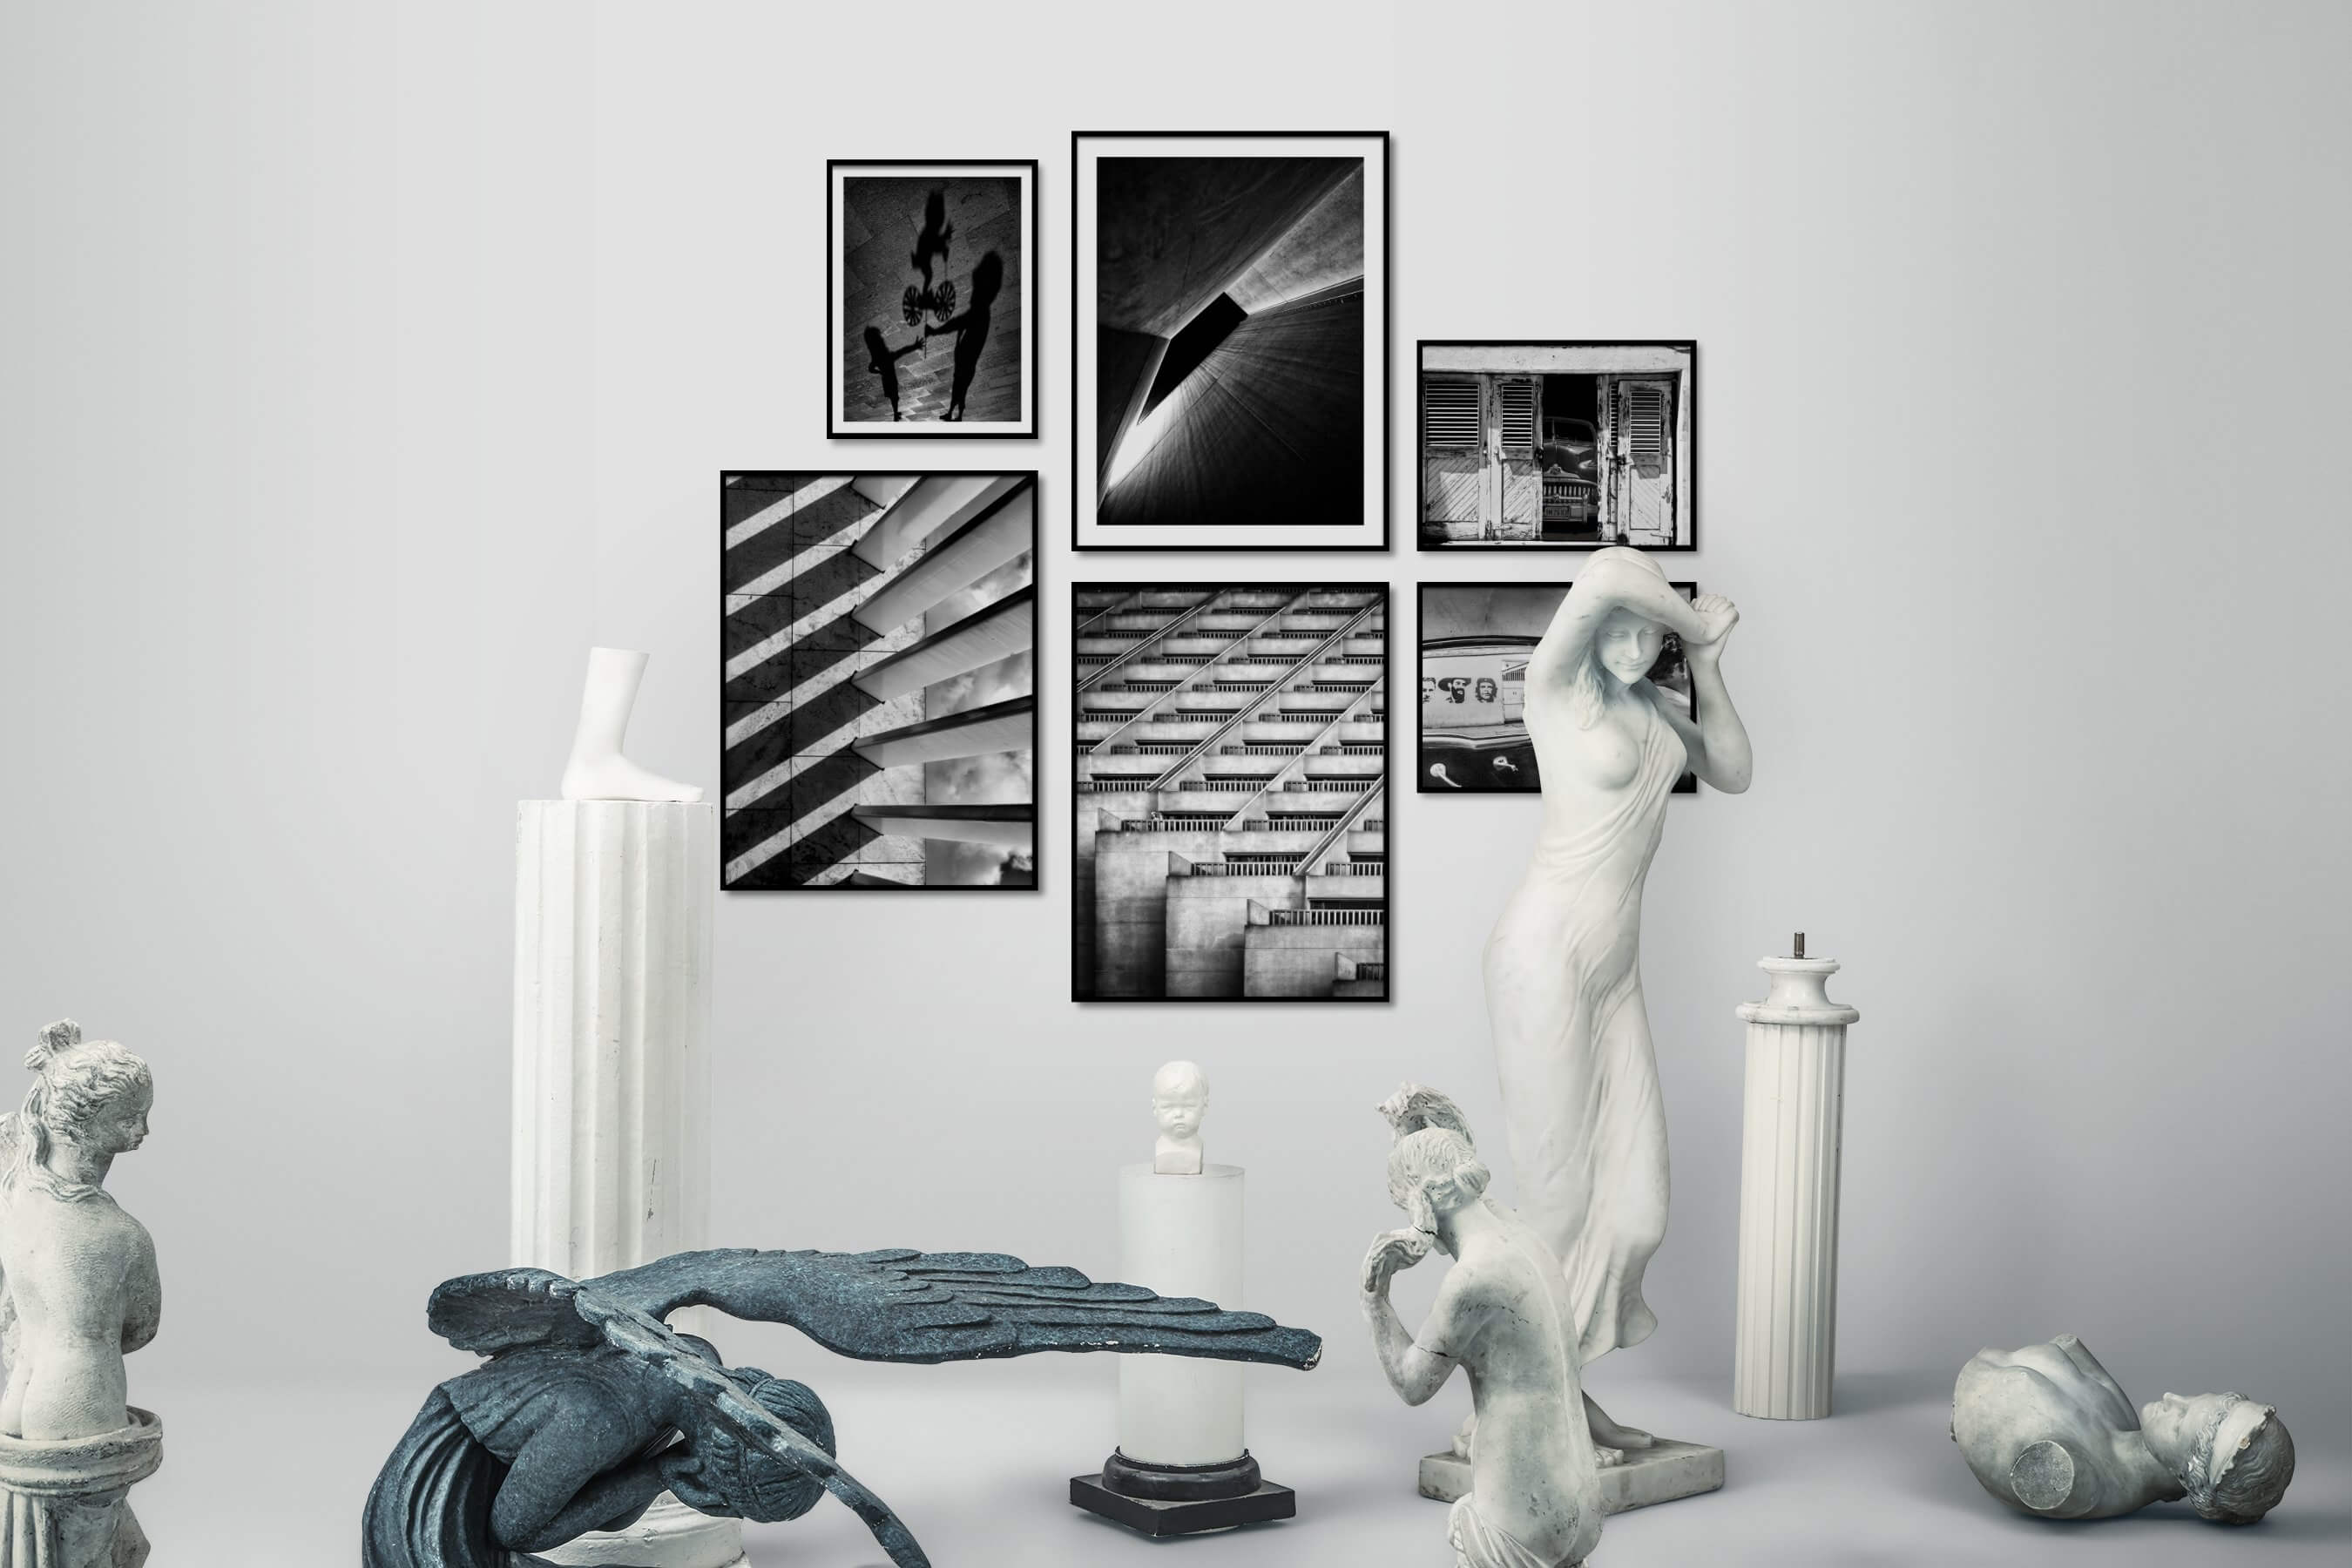 Gallery wall idea with six framed pictures arranged on a wall depicting Artsy, Black & White, For the Moderate, For the Minimalist, For the Maximalist, City Life, Americana, and Vintage